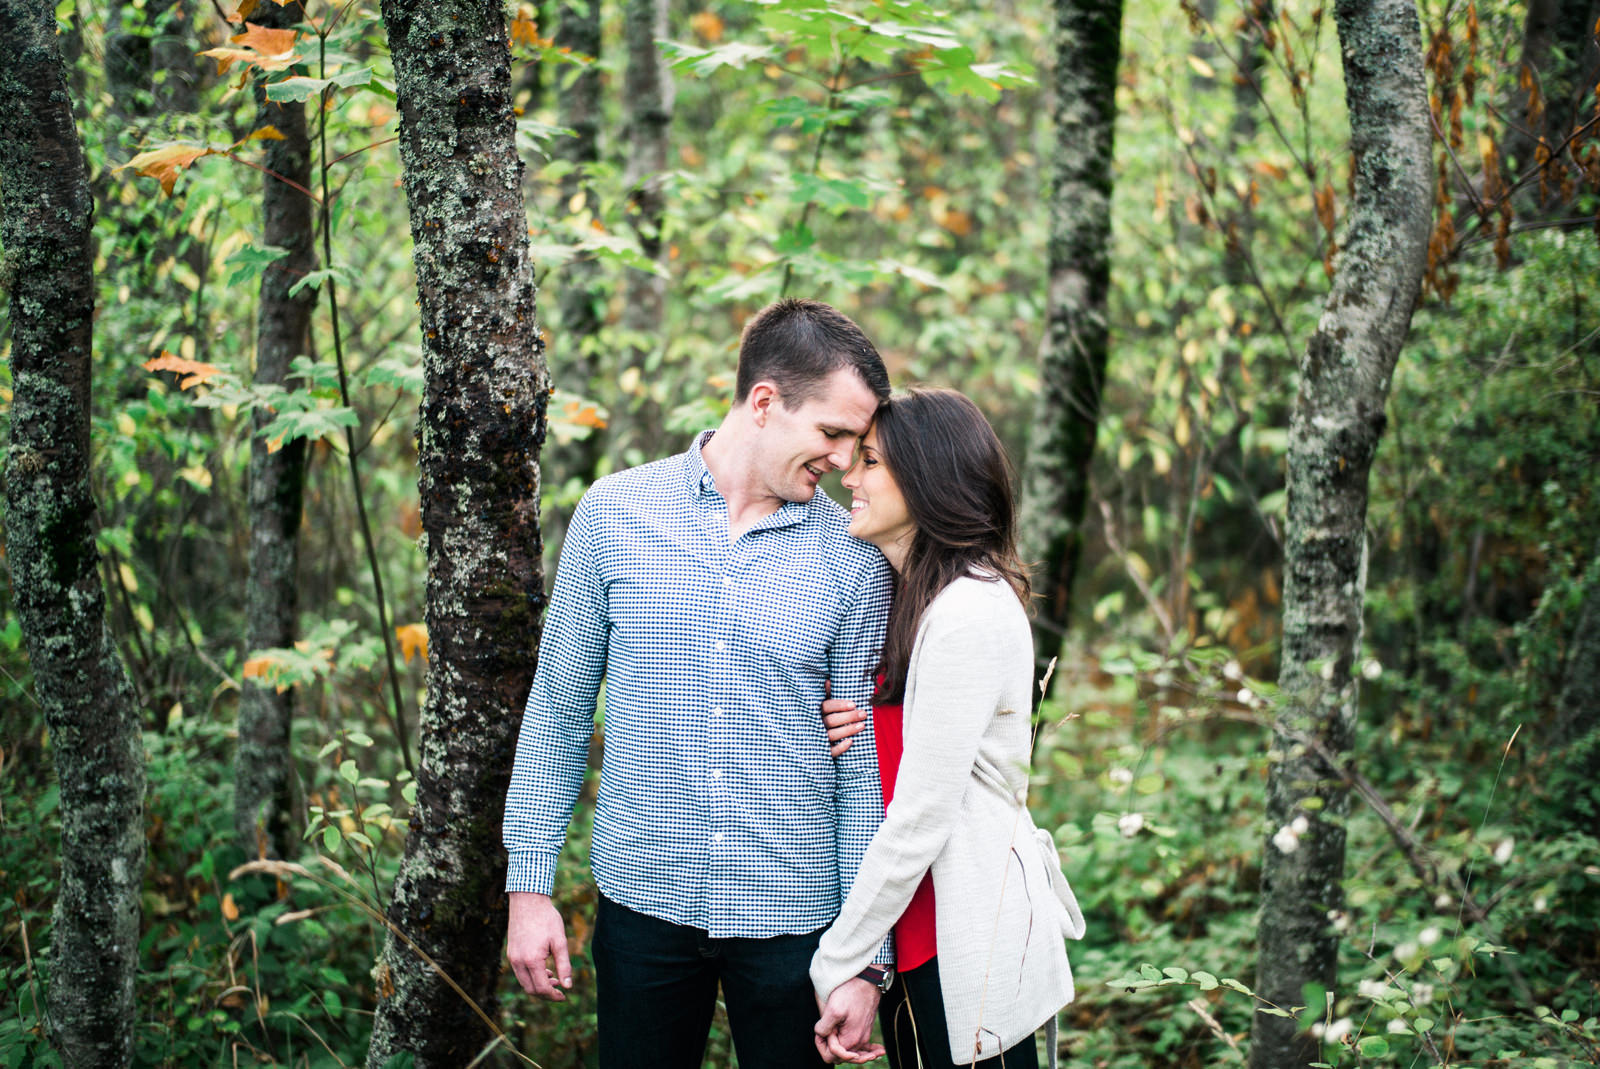 166-washington-engagement-session-at-discovery-park-by-ryan-flynn.jpg